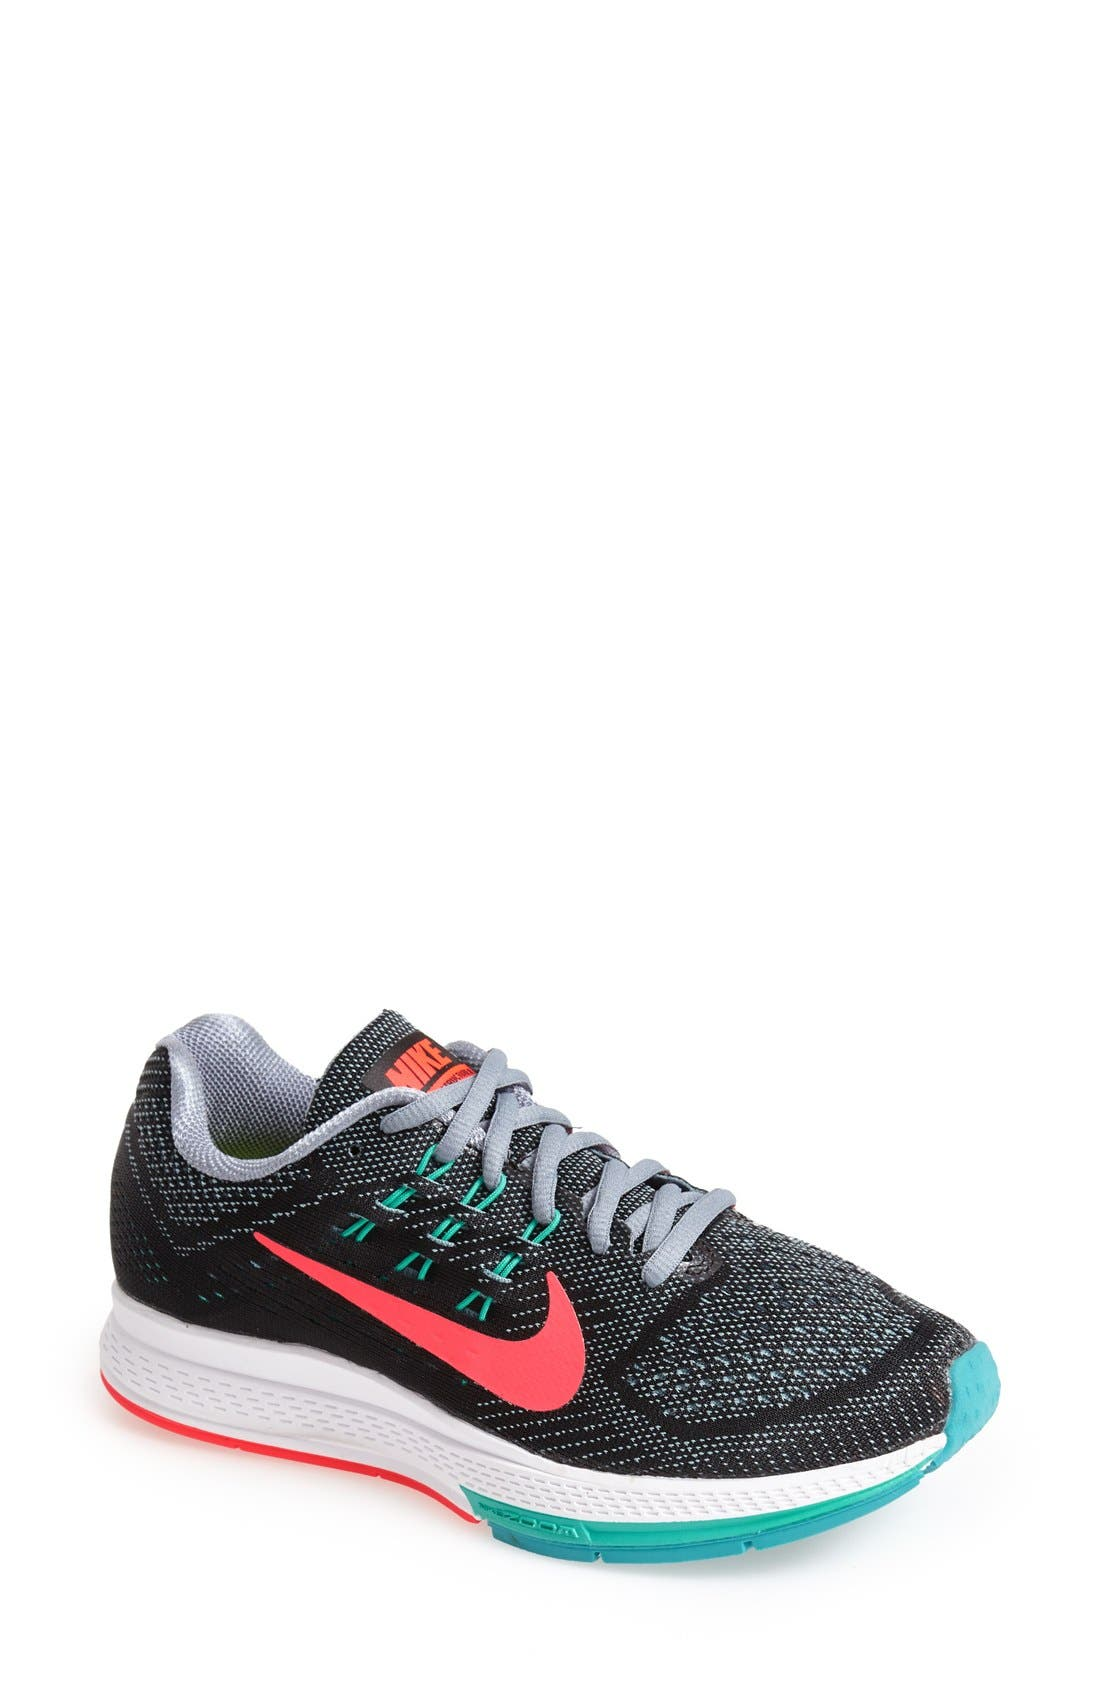 Main Image - Nike 'Air Zoom Structure 18' Running Shoe (Wide) (Women)